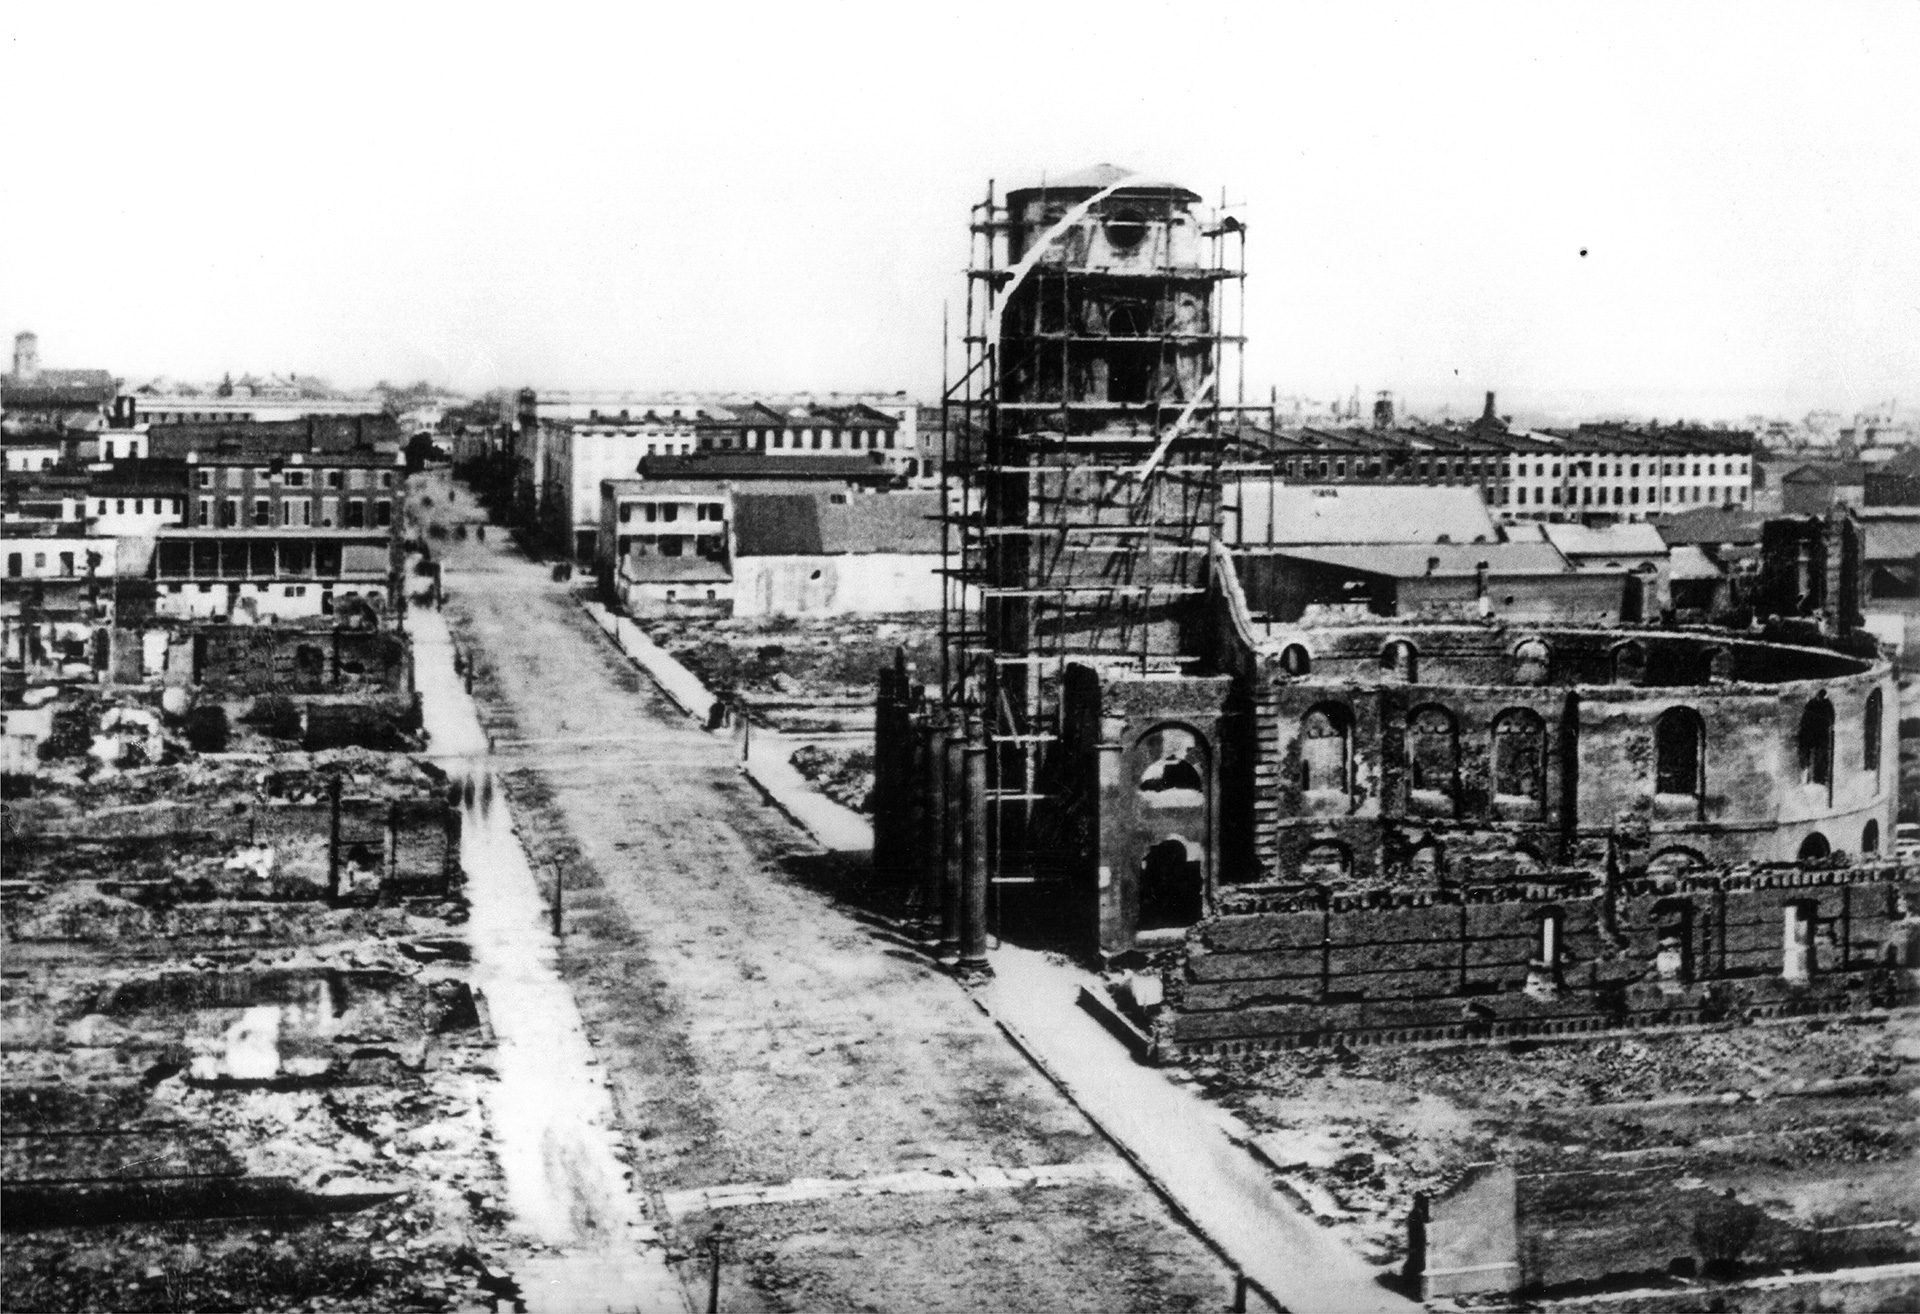 Looking north from The Mills House, spring 1865